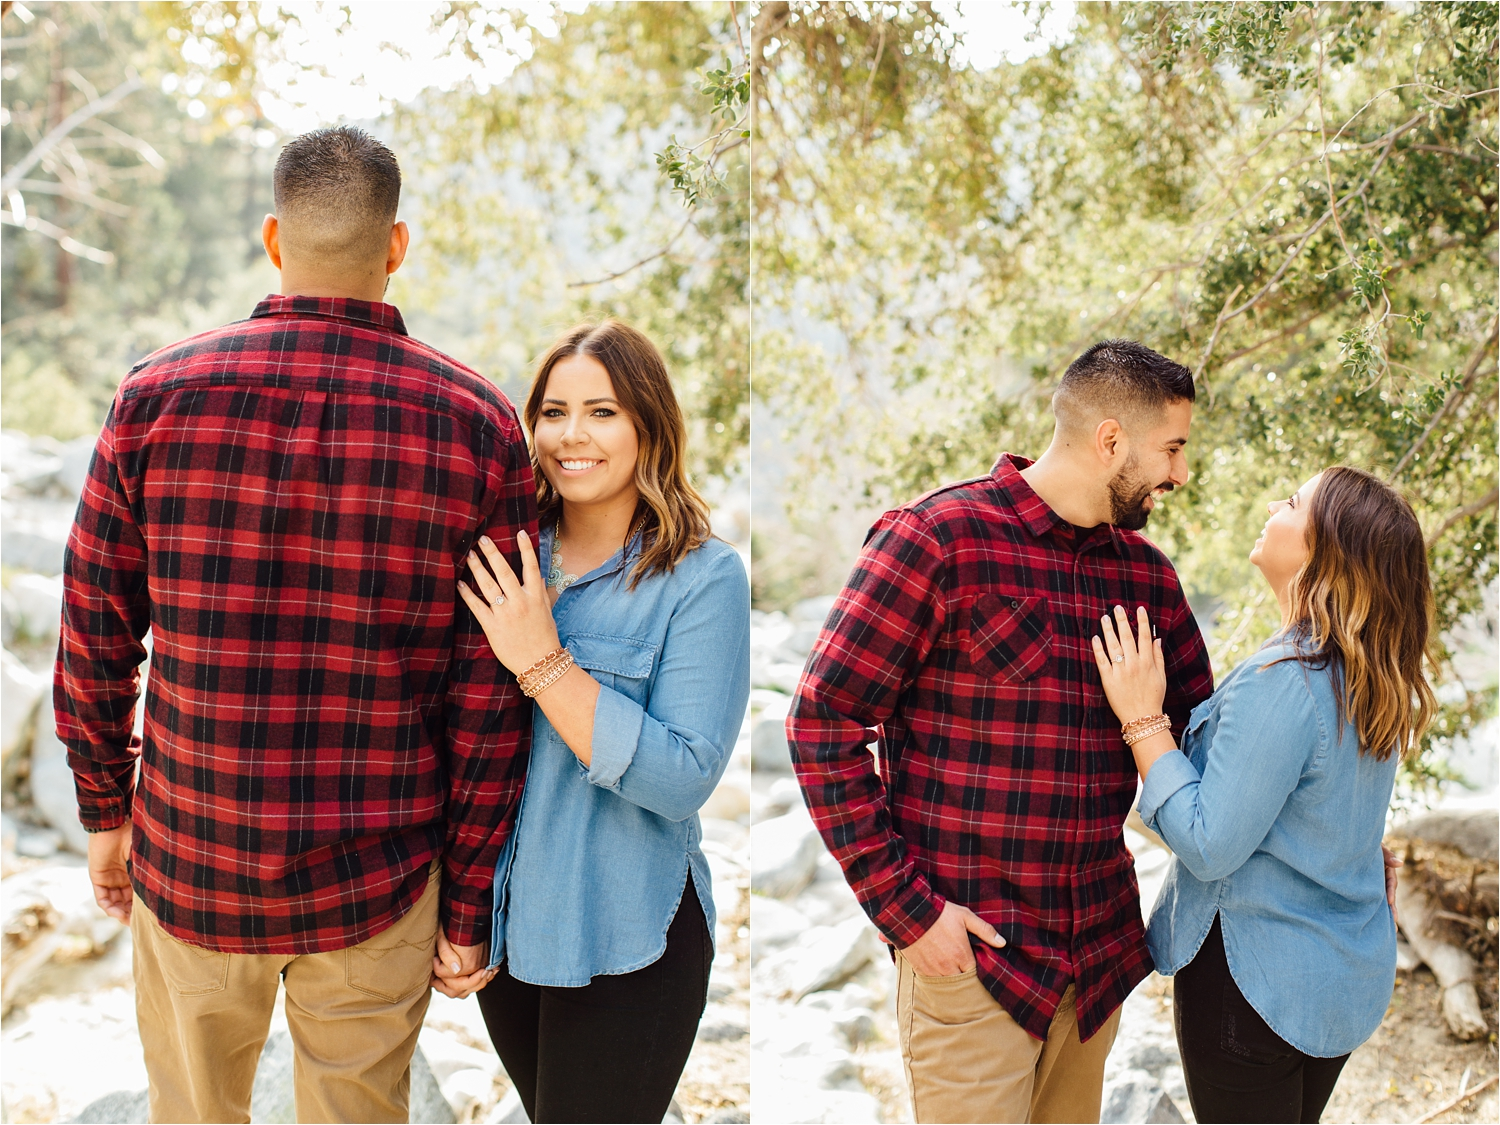 Romantic Mountain Engagement Session - http://brittneyhannonphotography.com